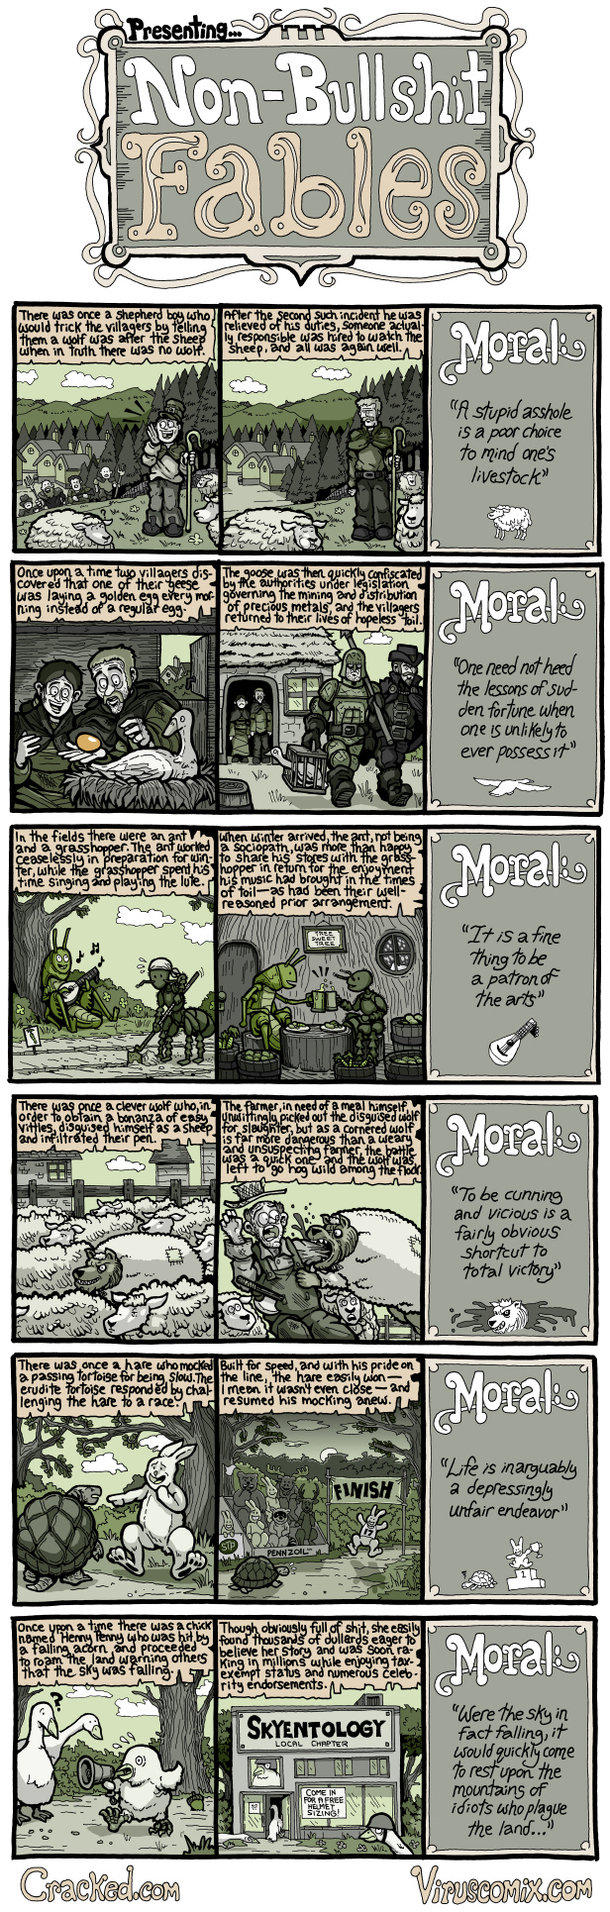 If Classic Fables Actually Told the Truth [COMIC]